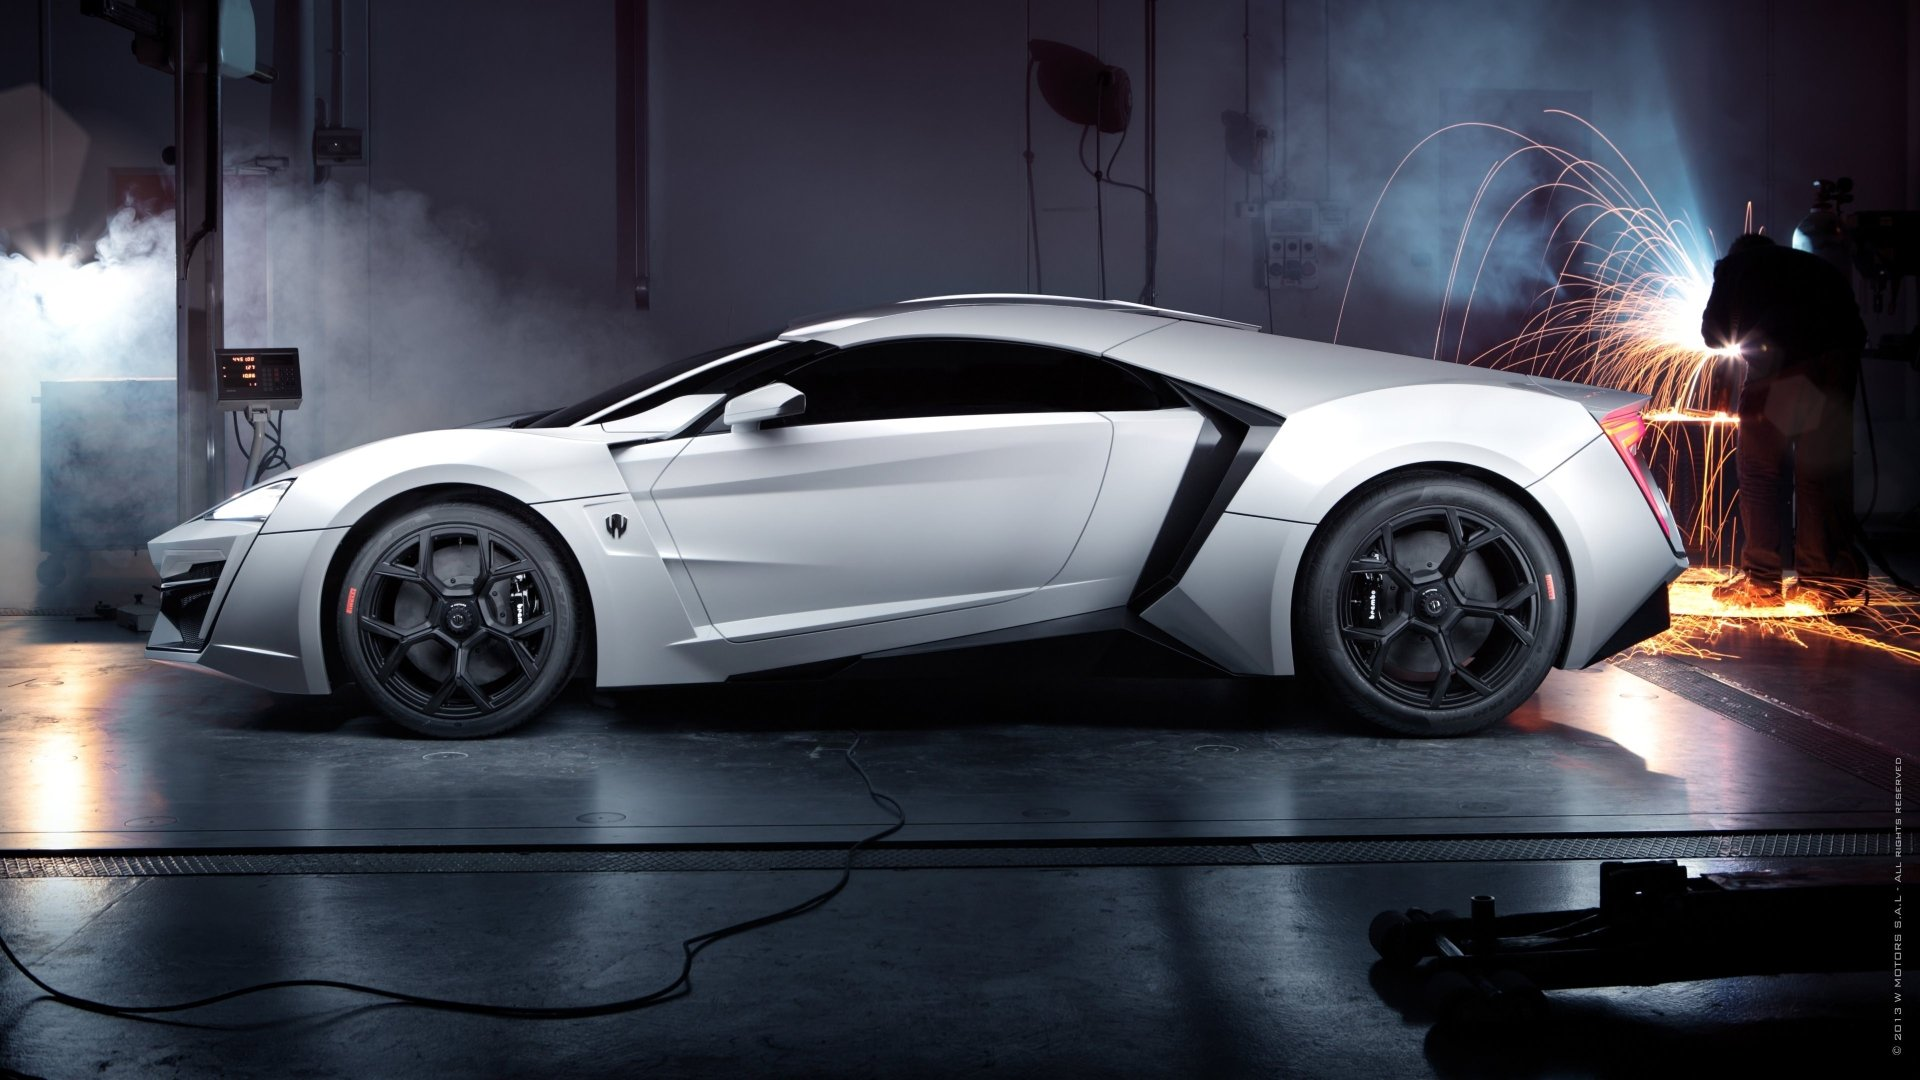 39 Lykan Hypersport Hd Wallpapers Background Images Wallpaper Abyss